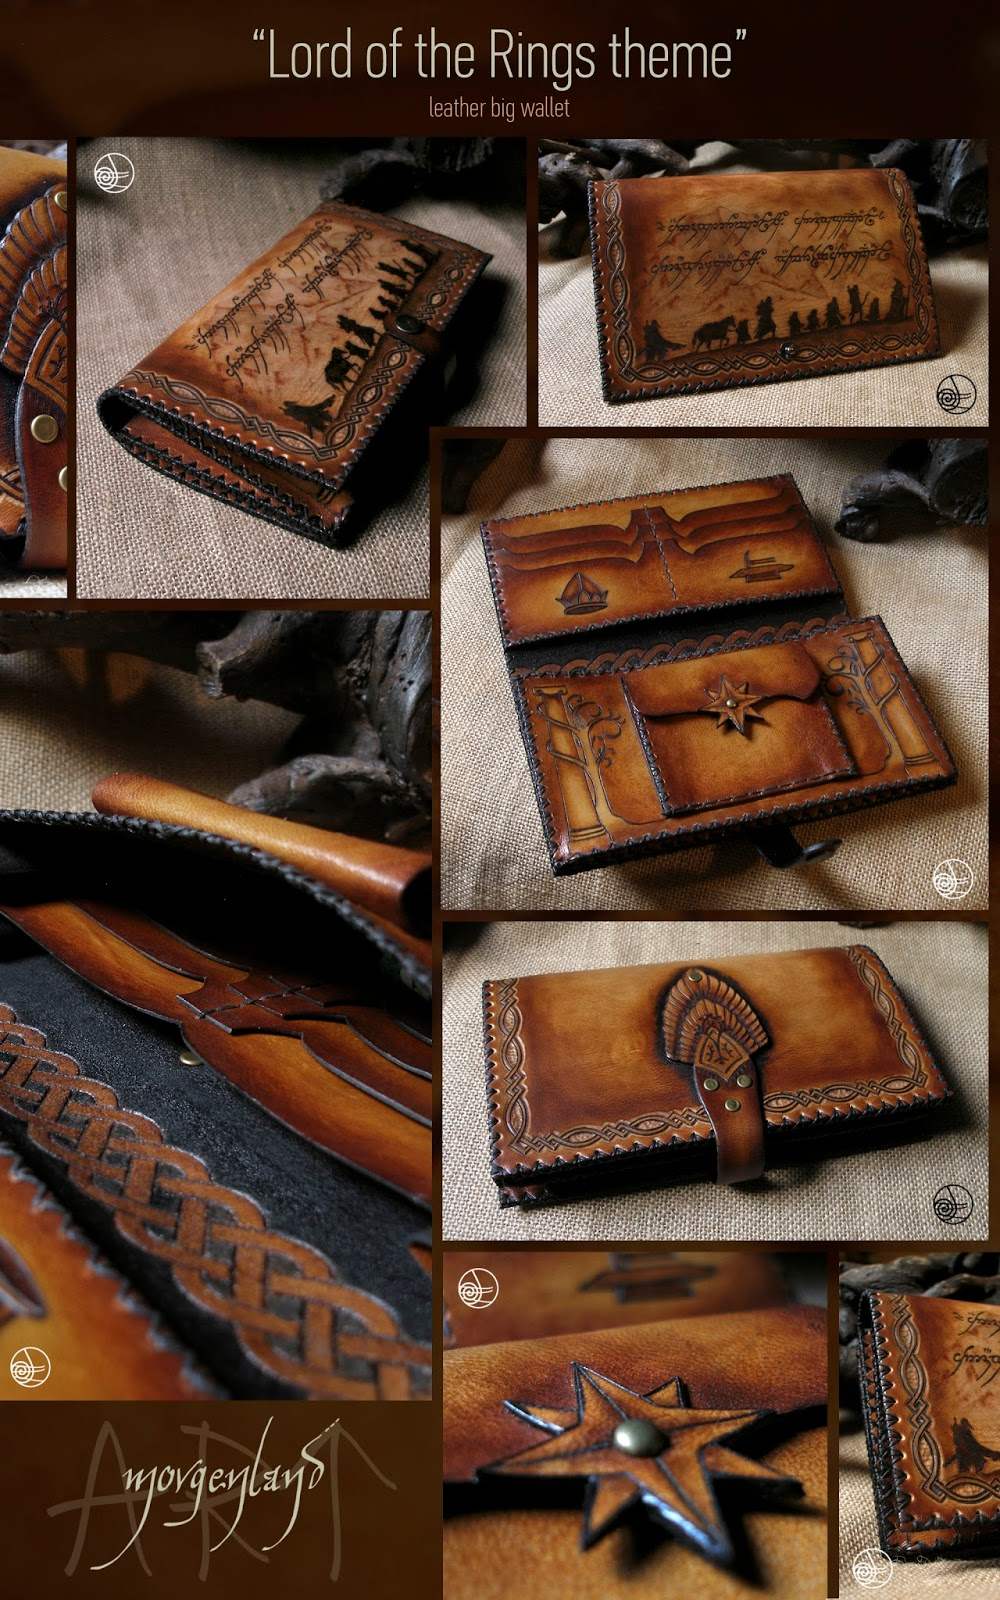 Gmail old theme - Lord Of The Rings Theme Big Leather Wallet